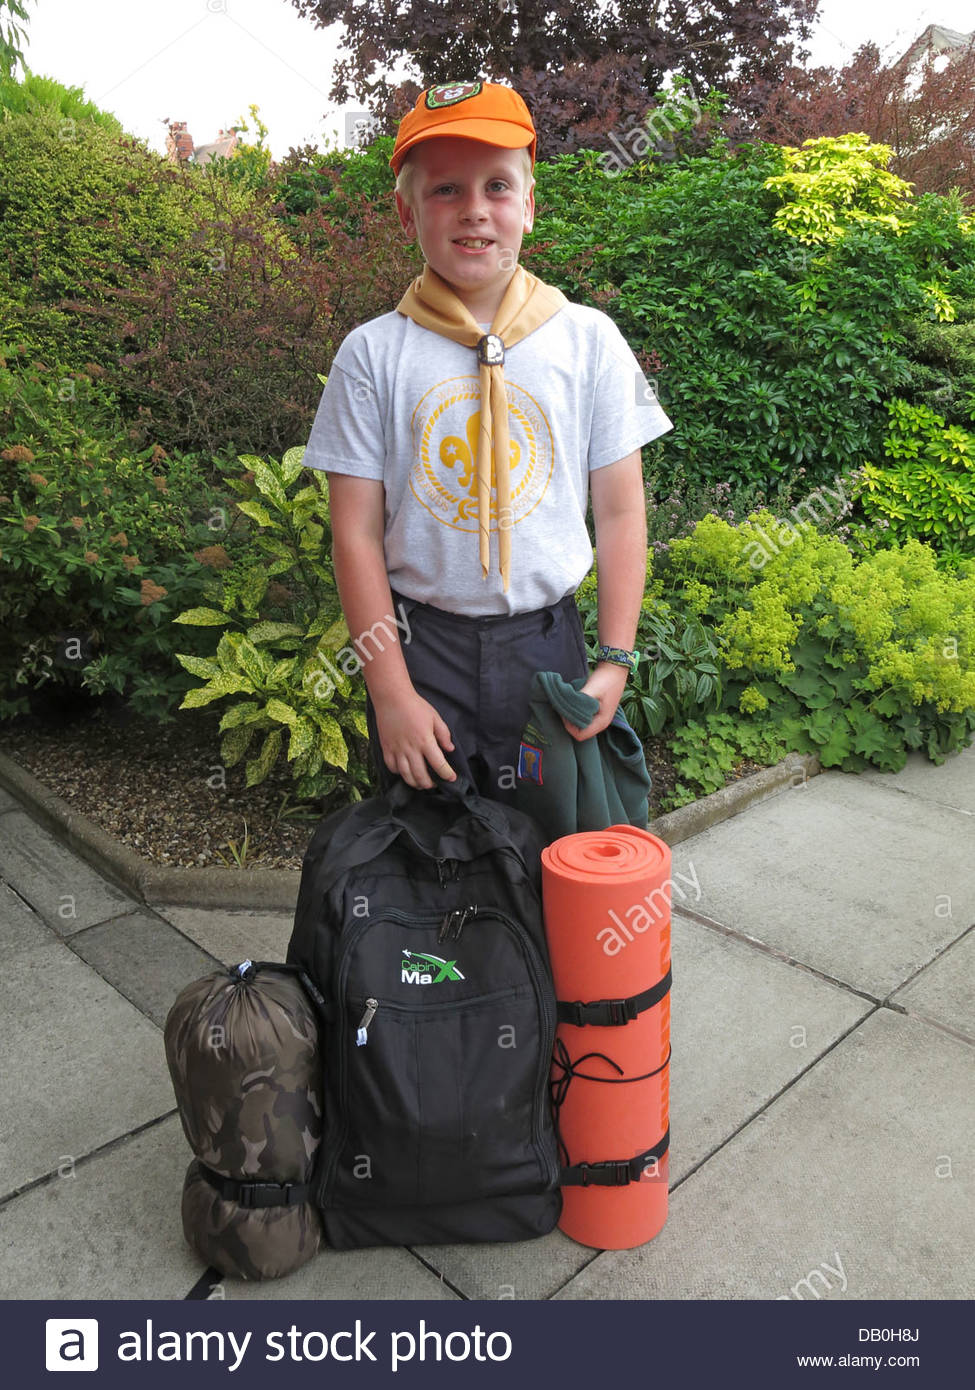 Cub Scout smiling and ready for scout camp overnight one summer weekend - Stock Image